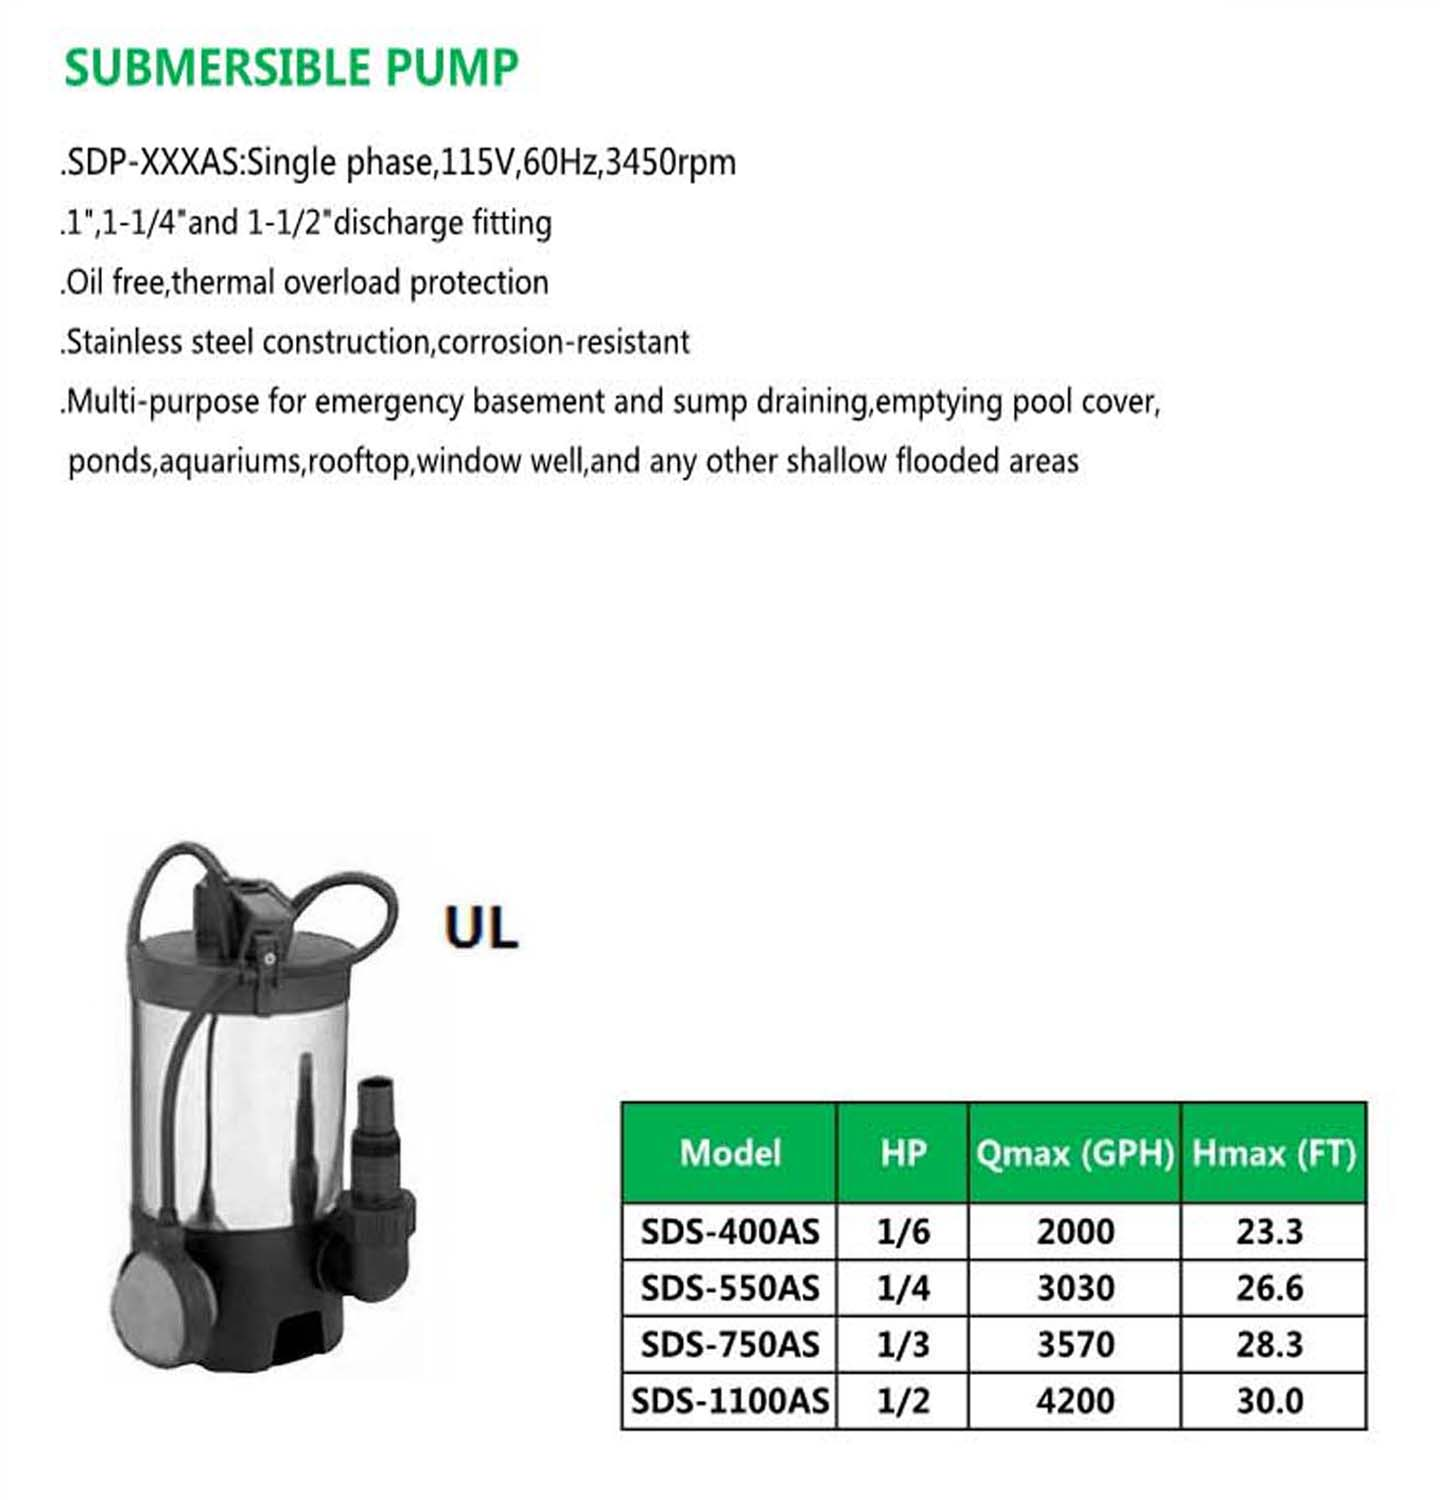 SUBMERSIBLE PUMP SDS-400AS SDS-550AS SDS-750AS SDS-1100AS